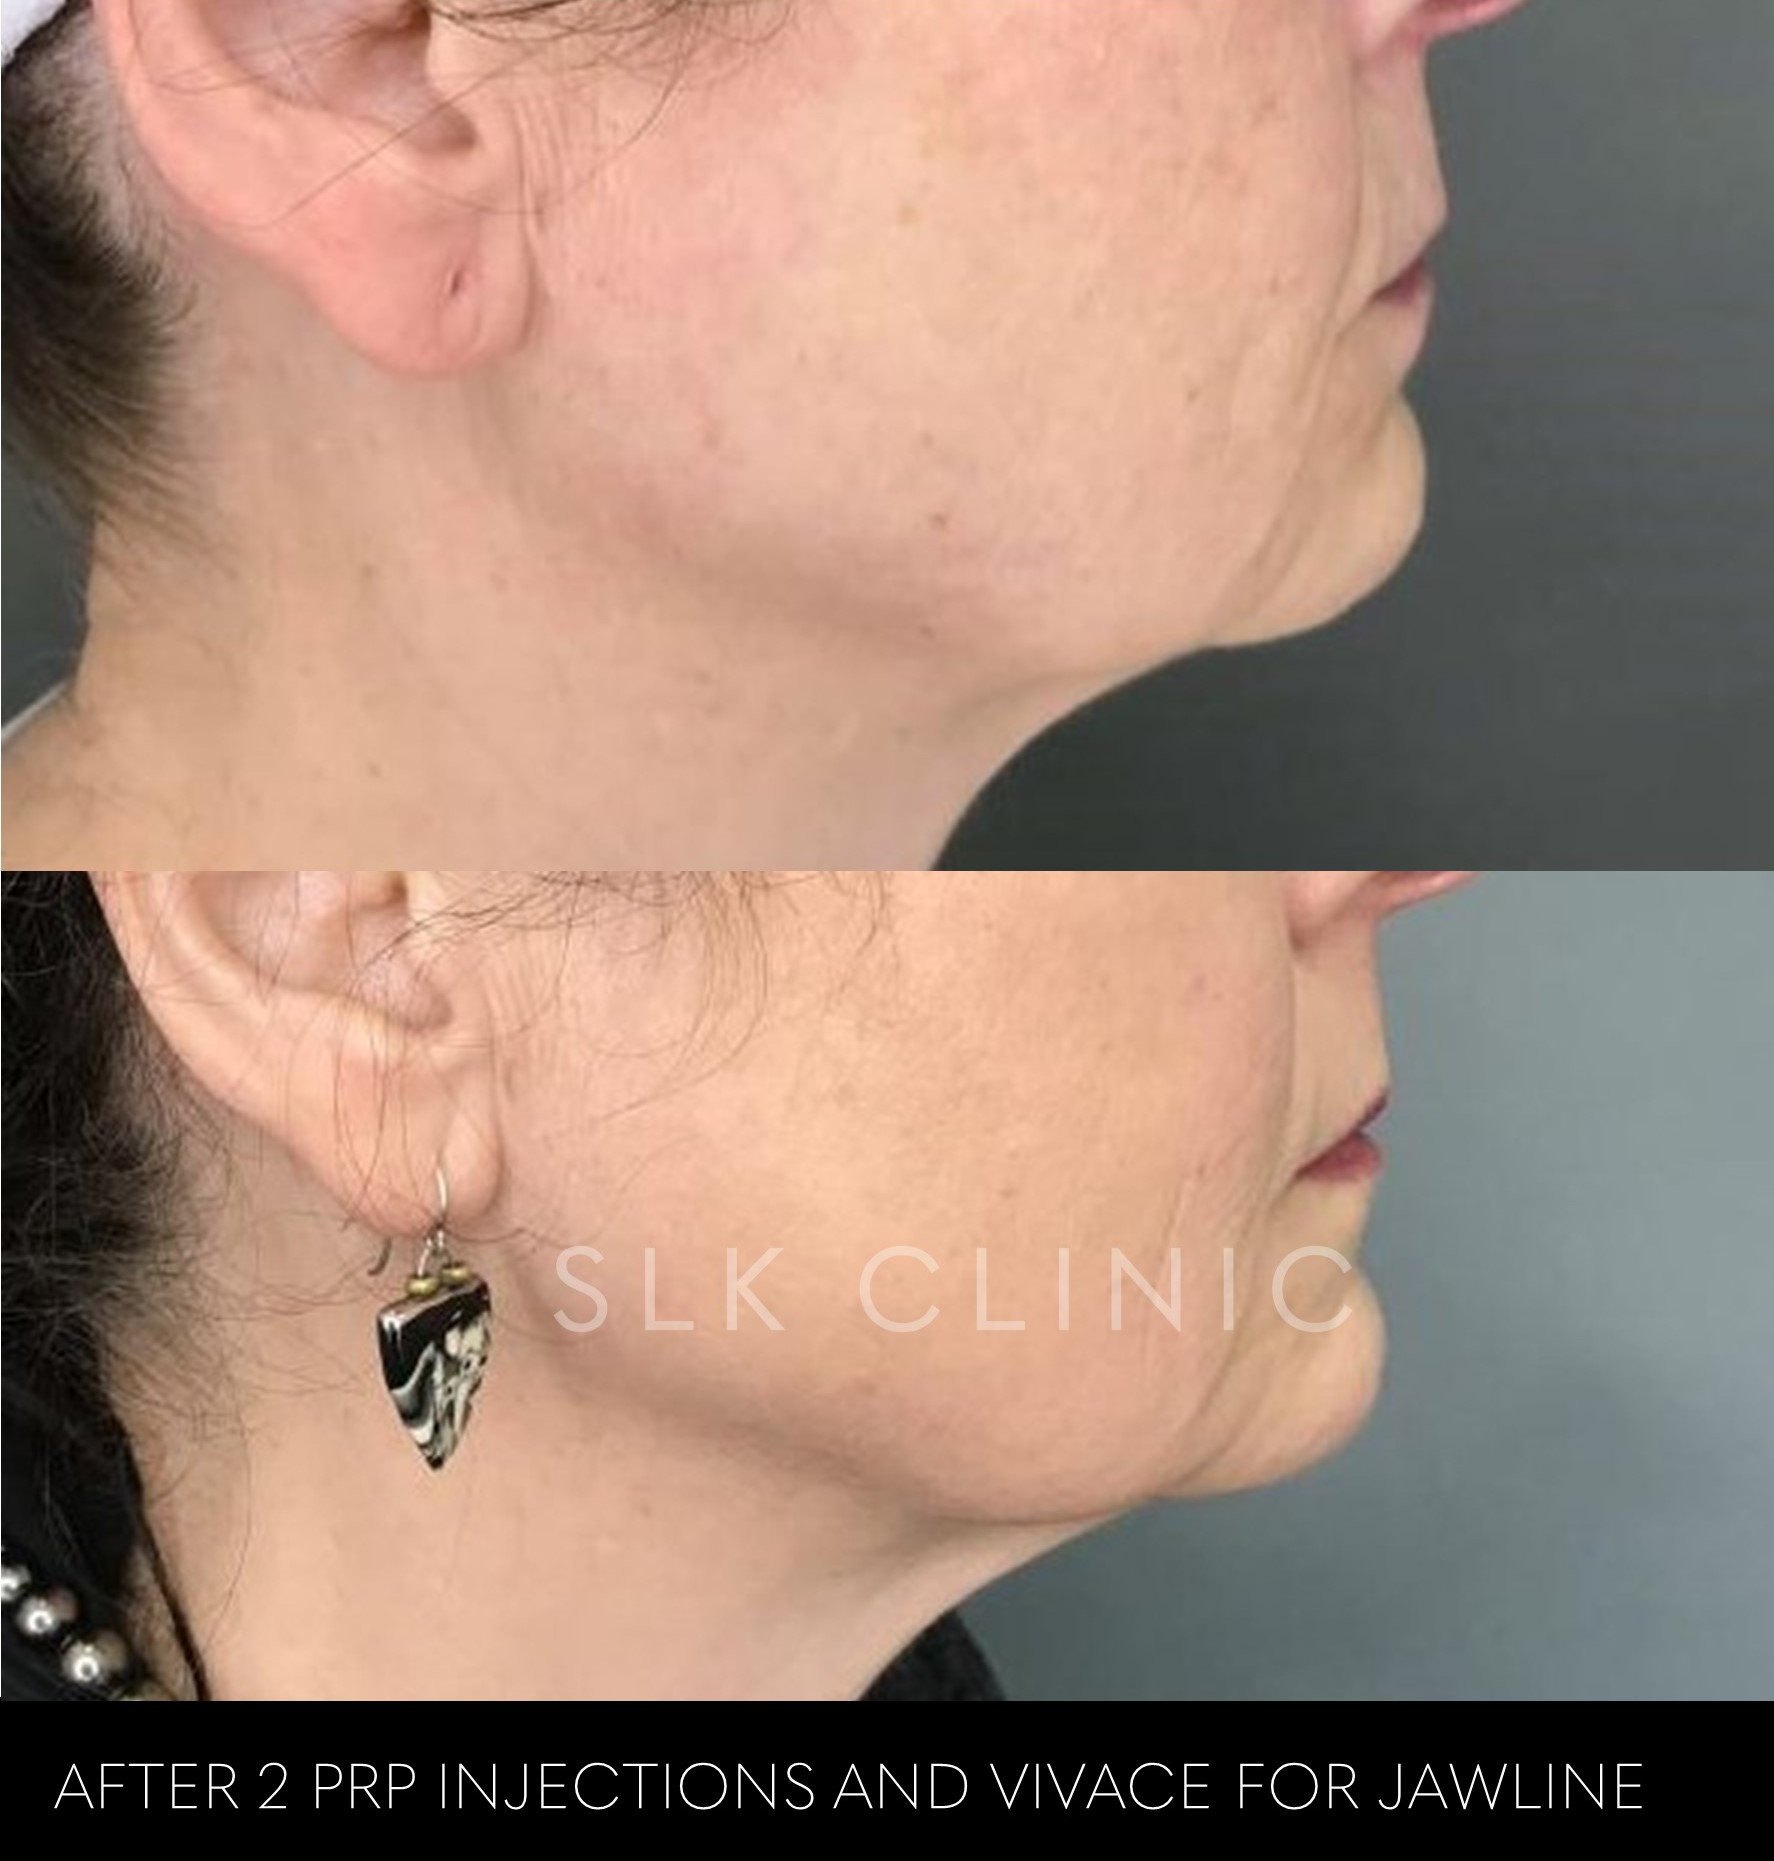 before and after 2 prp injections jawline